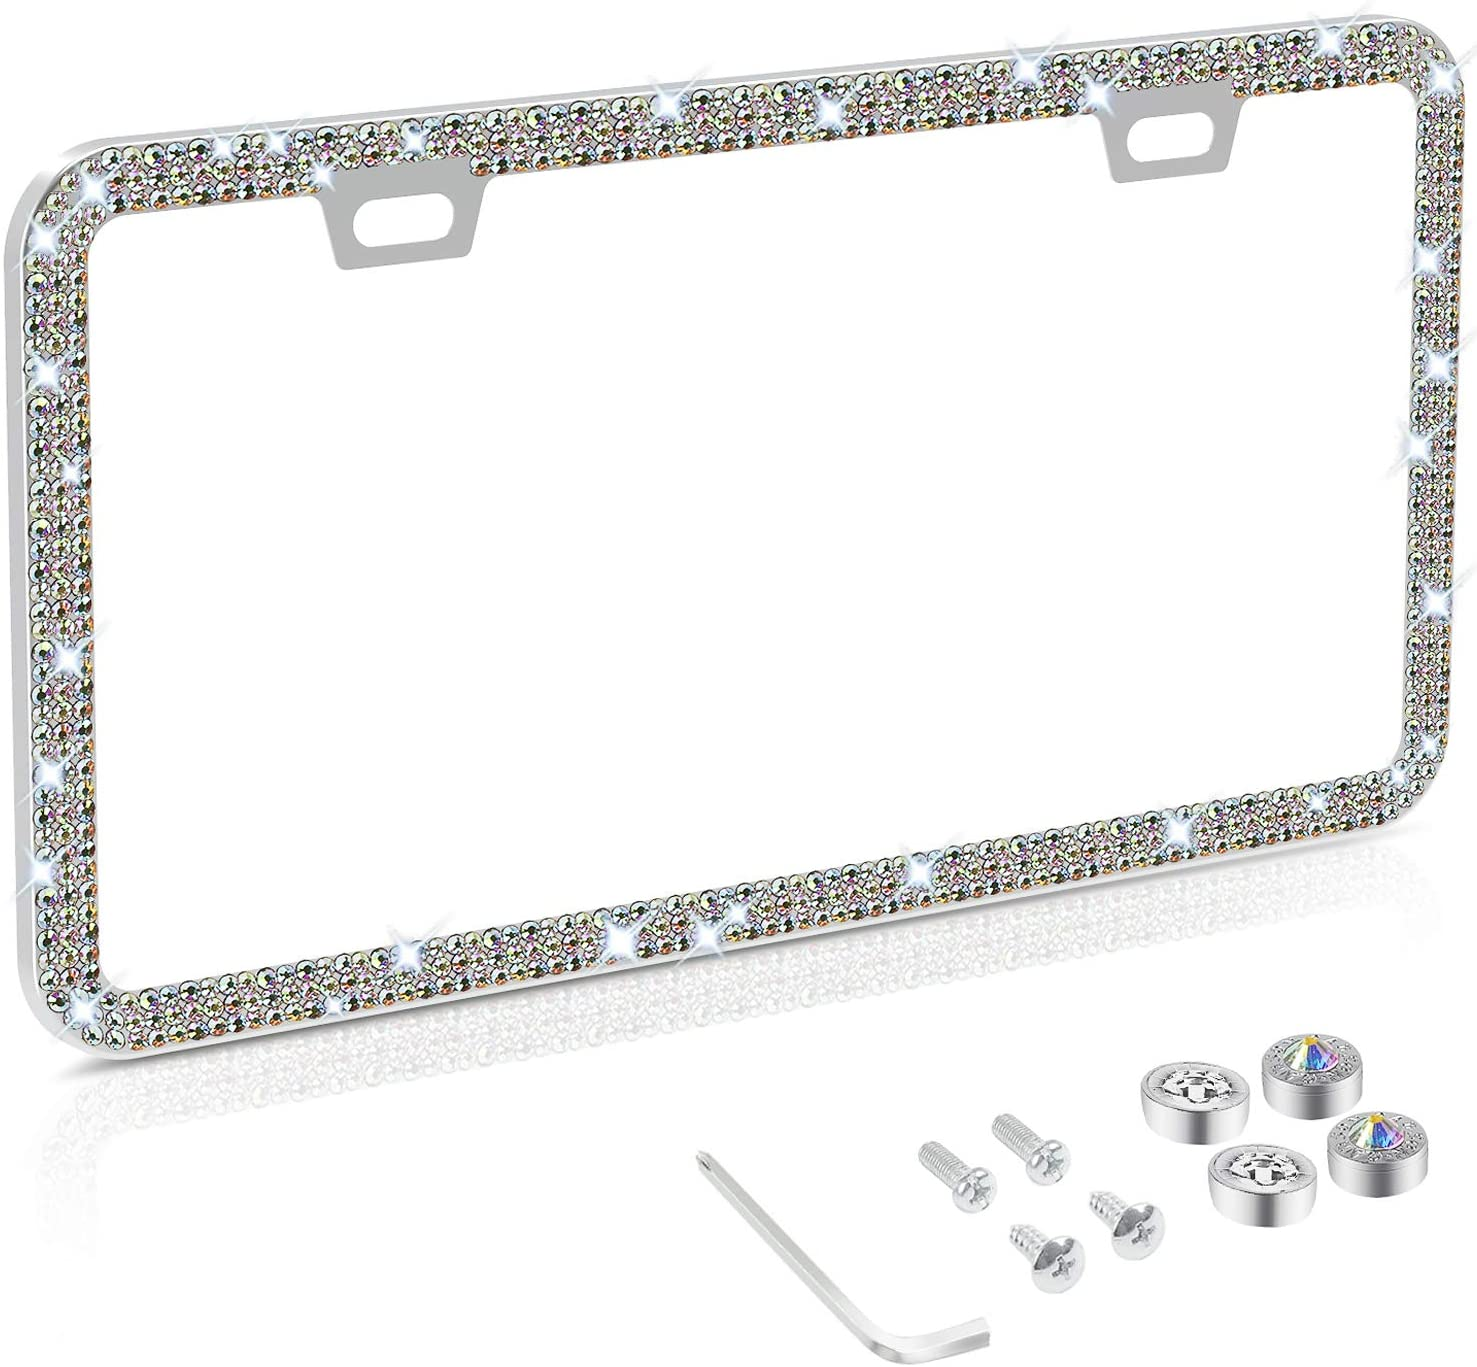 Bling Rhinestone License Plate Frame for Women, Stainless Steel Thin Border Multicolor Diamond License Plate Frames with Anti Theft Screw Caps